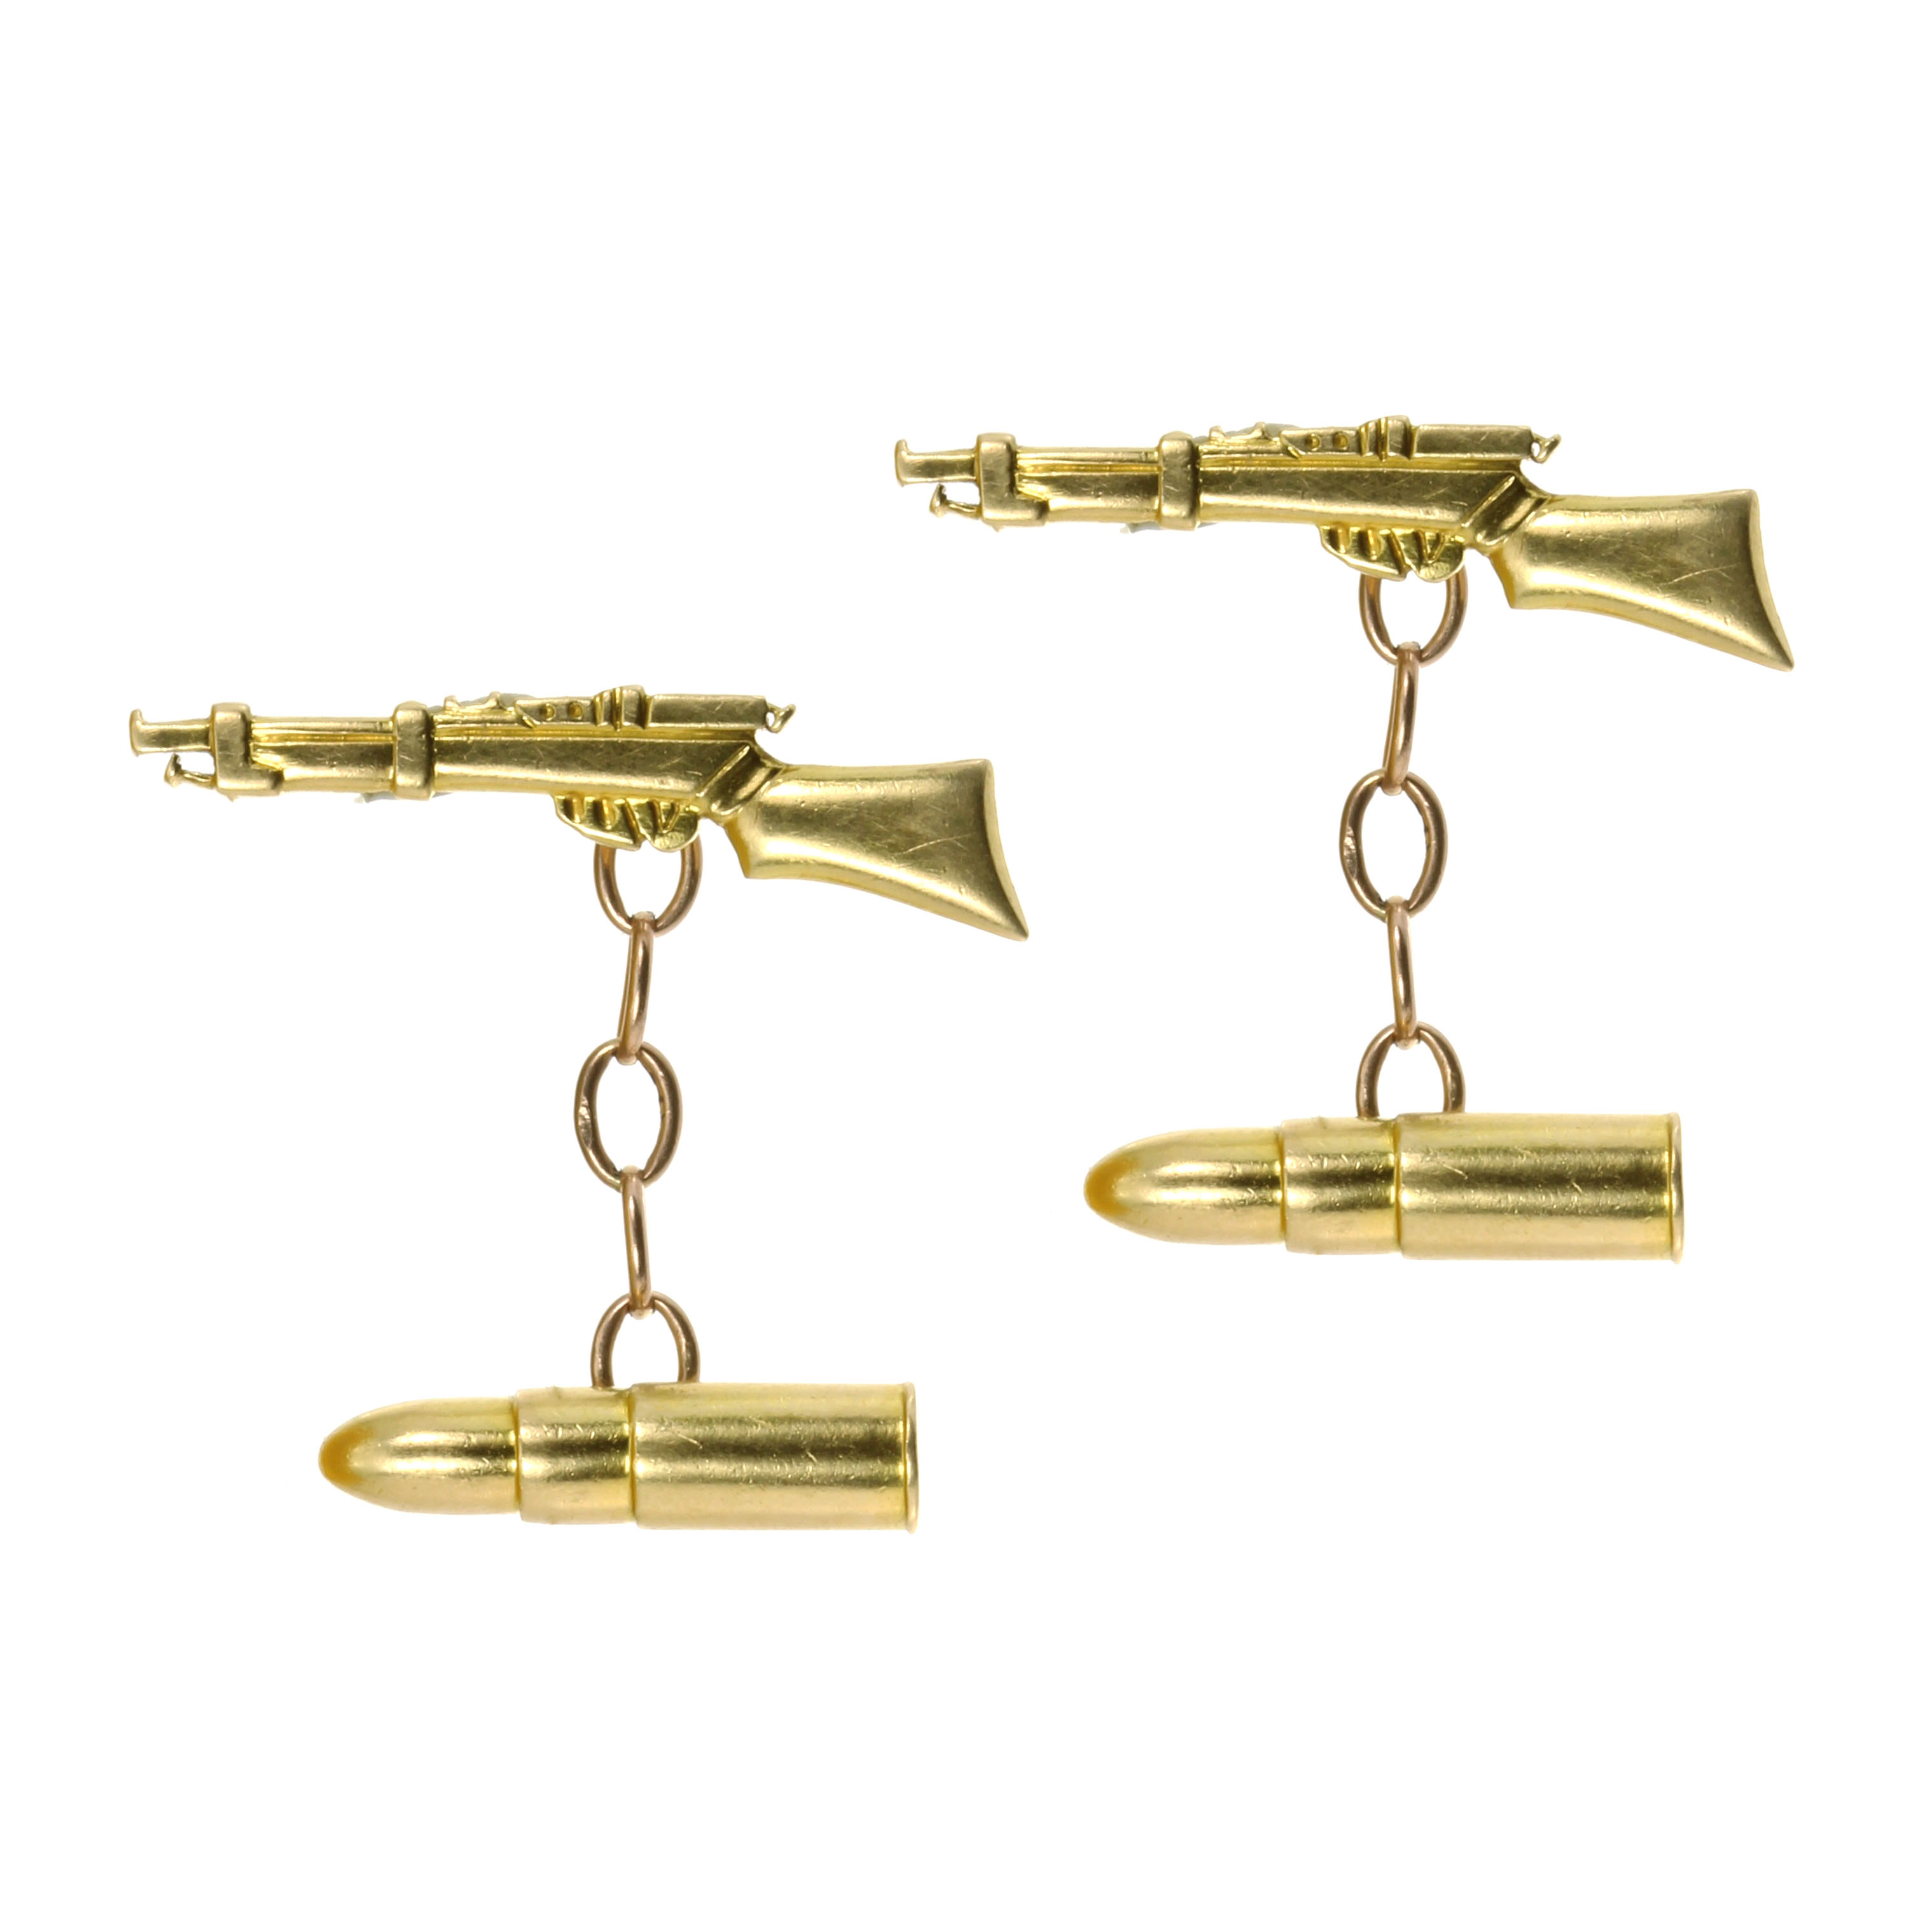 Los 50 - A PAIR OF GUN / PISTOL AND BULLET CUFFLINKS in yellow gold, each comprising two links modeled as a